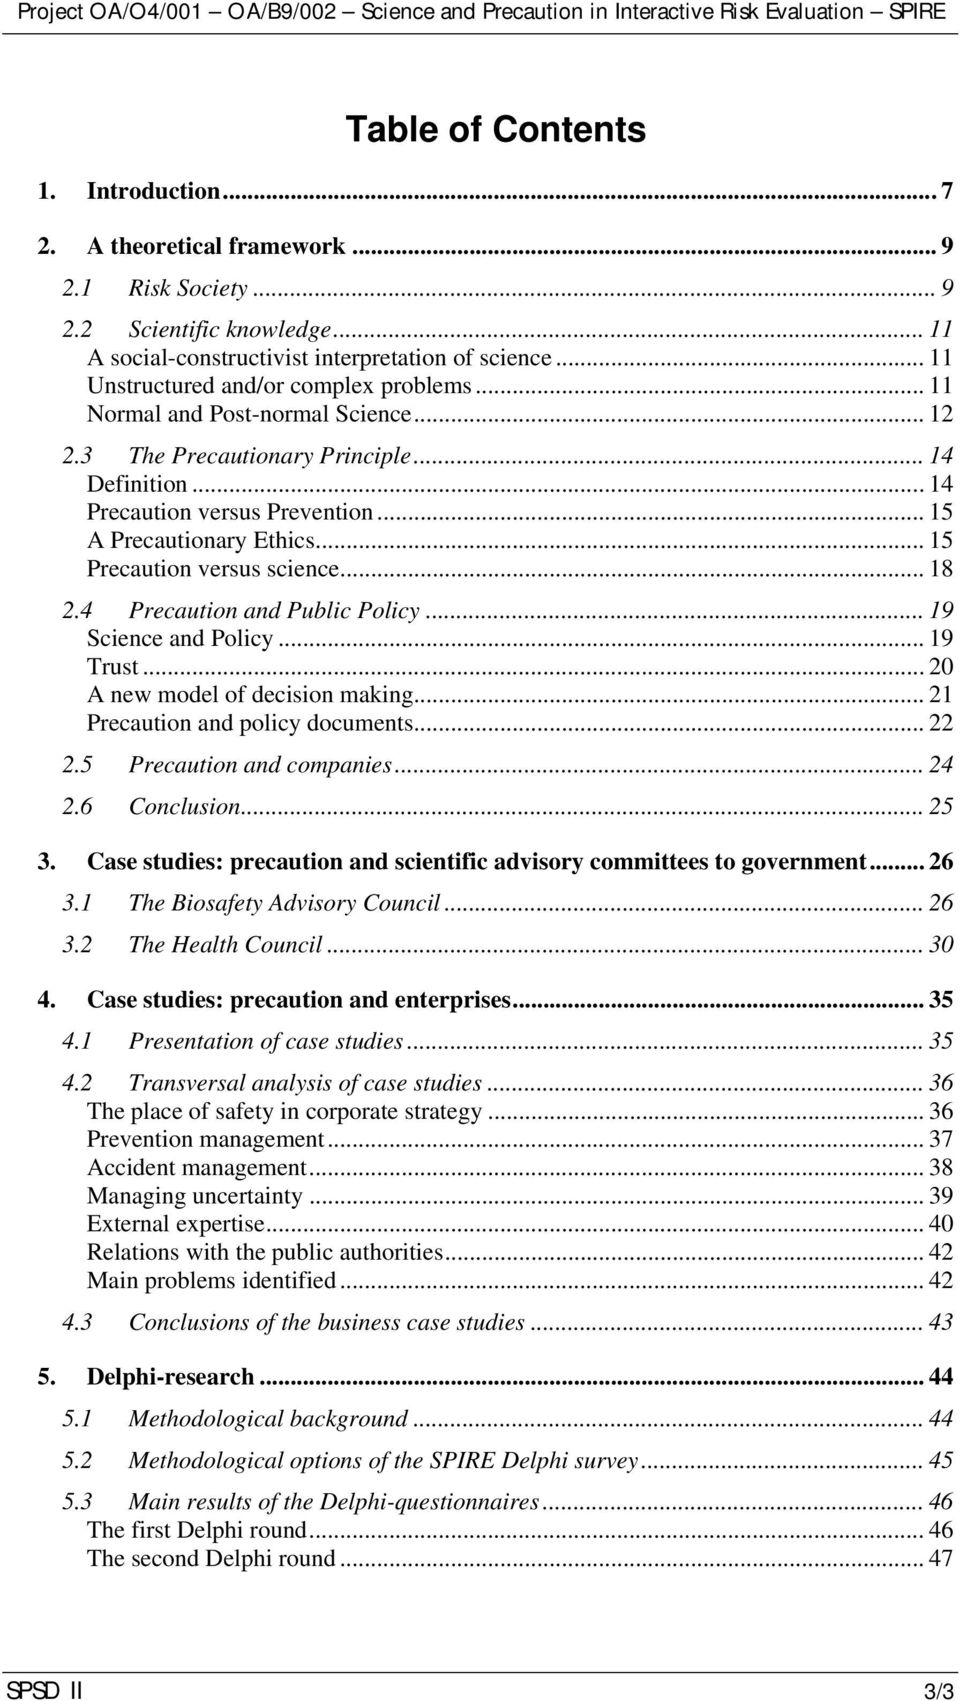 .. 15 Precaution versus science... 18 2.4 Precaution and Public Policy... 19 Science and Policy... 19 Trust... 20 A new model of decision making... 21 Precaution and policy documents... 22 2.